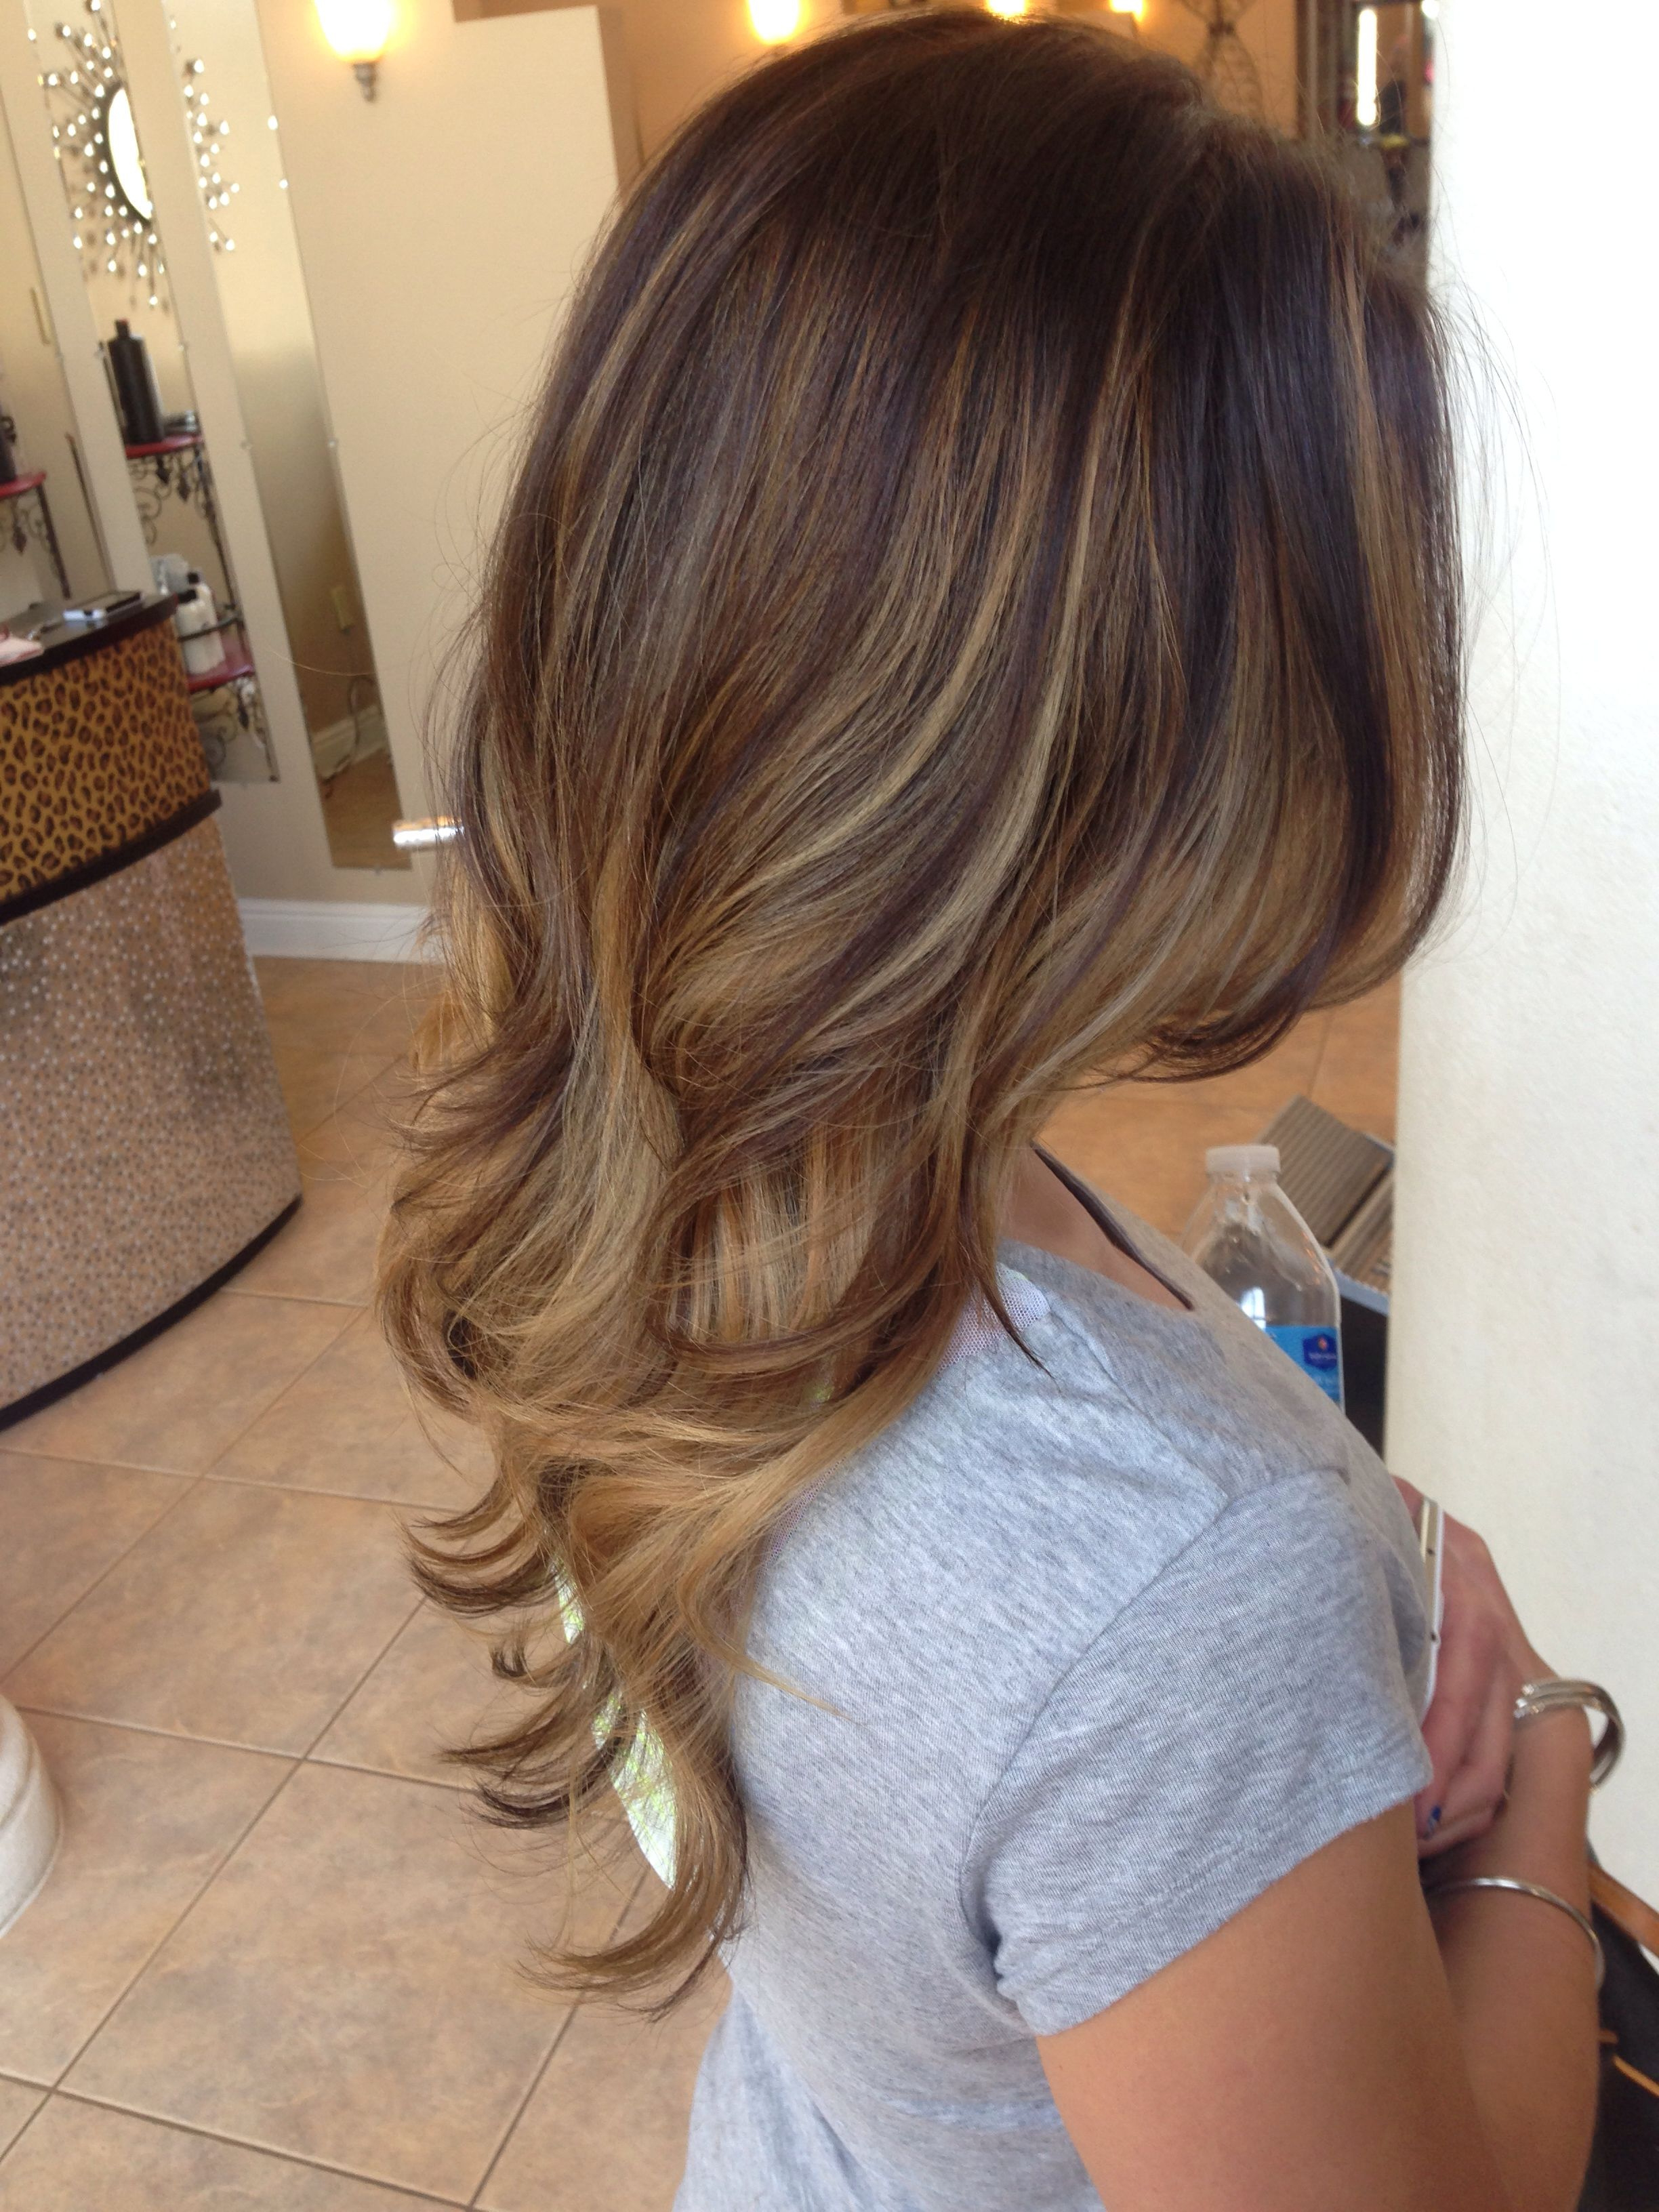 Hairstyles : Light Blonde Balayage Hair Most Inspiring Balayage Inside Newest Balayage Hairstyles For Long Layers (View 11 of 20)